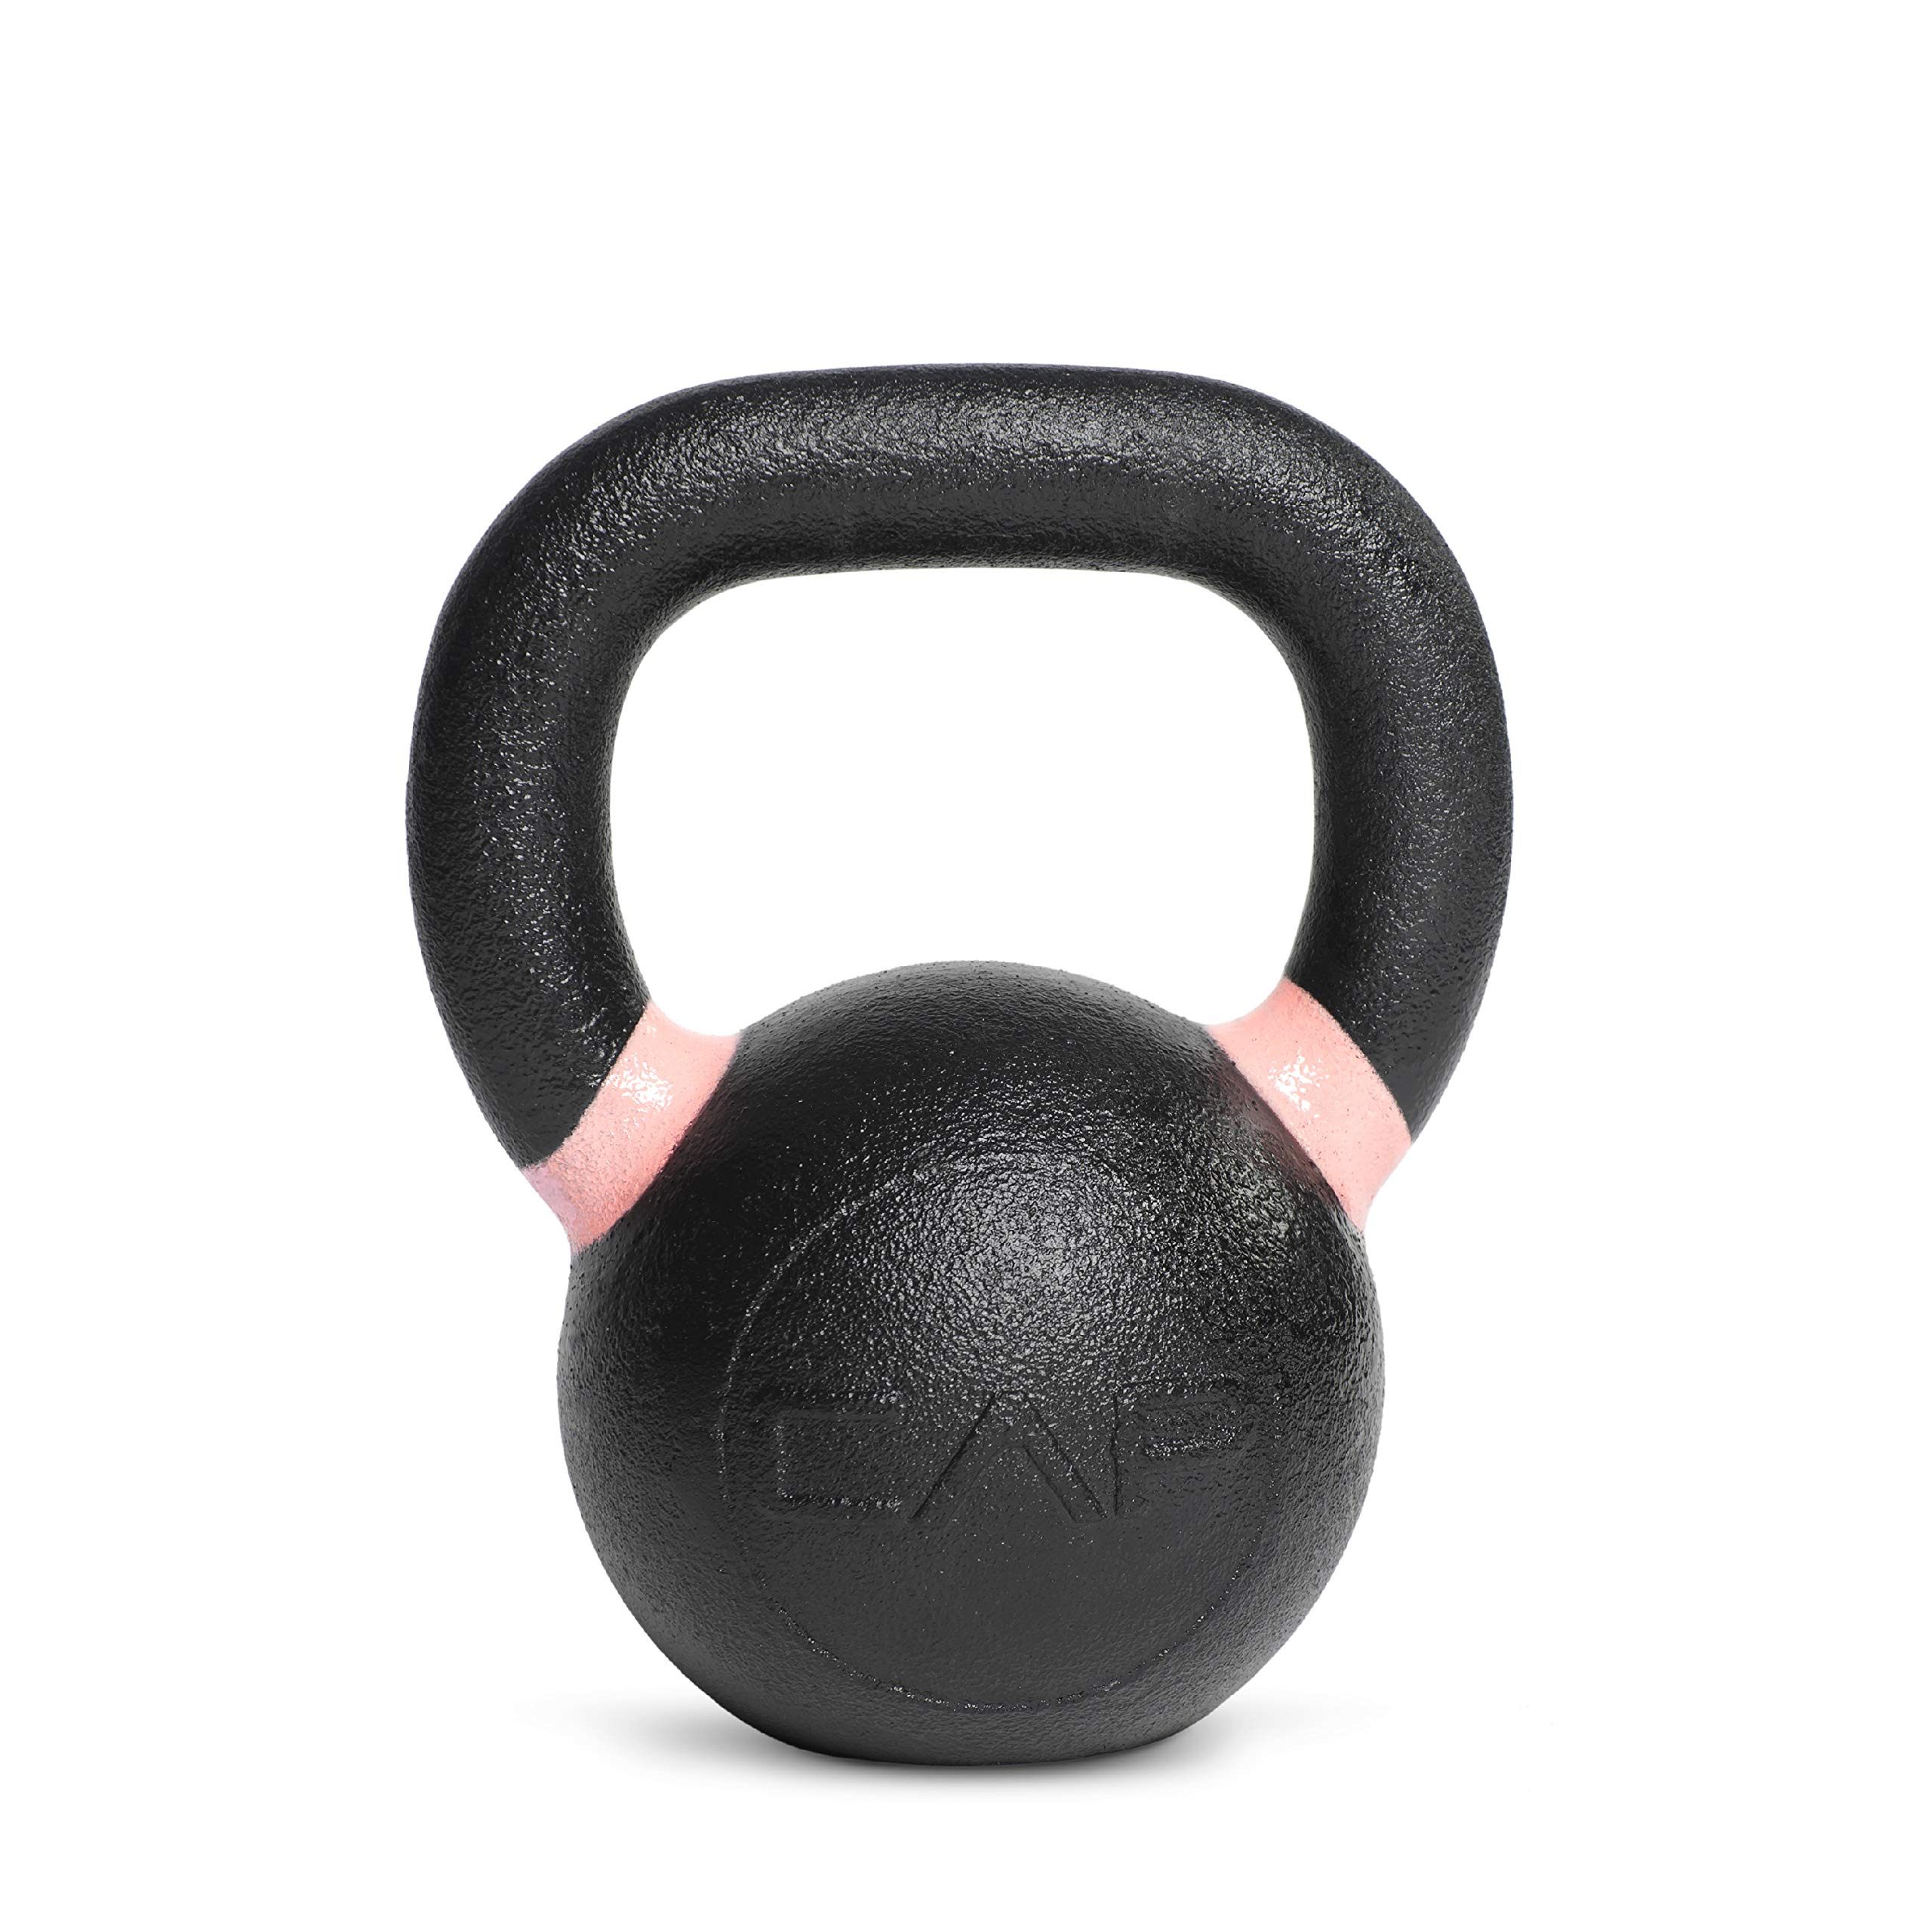 CAP Barbell SDK5-018 Cast Iron Competition Kettlebell Weights, 18 Pound, Black/Pink